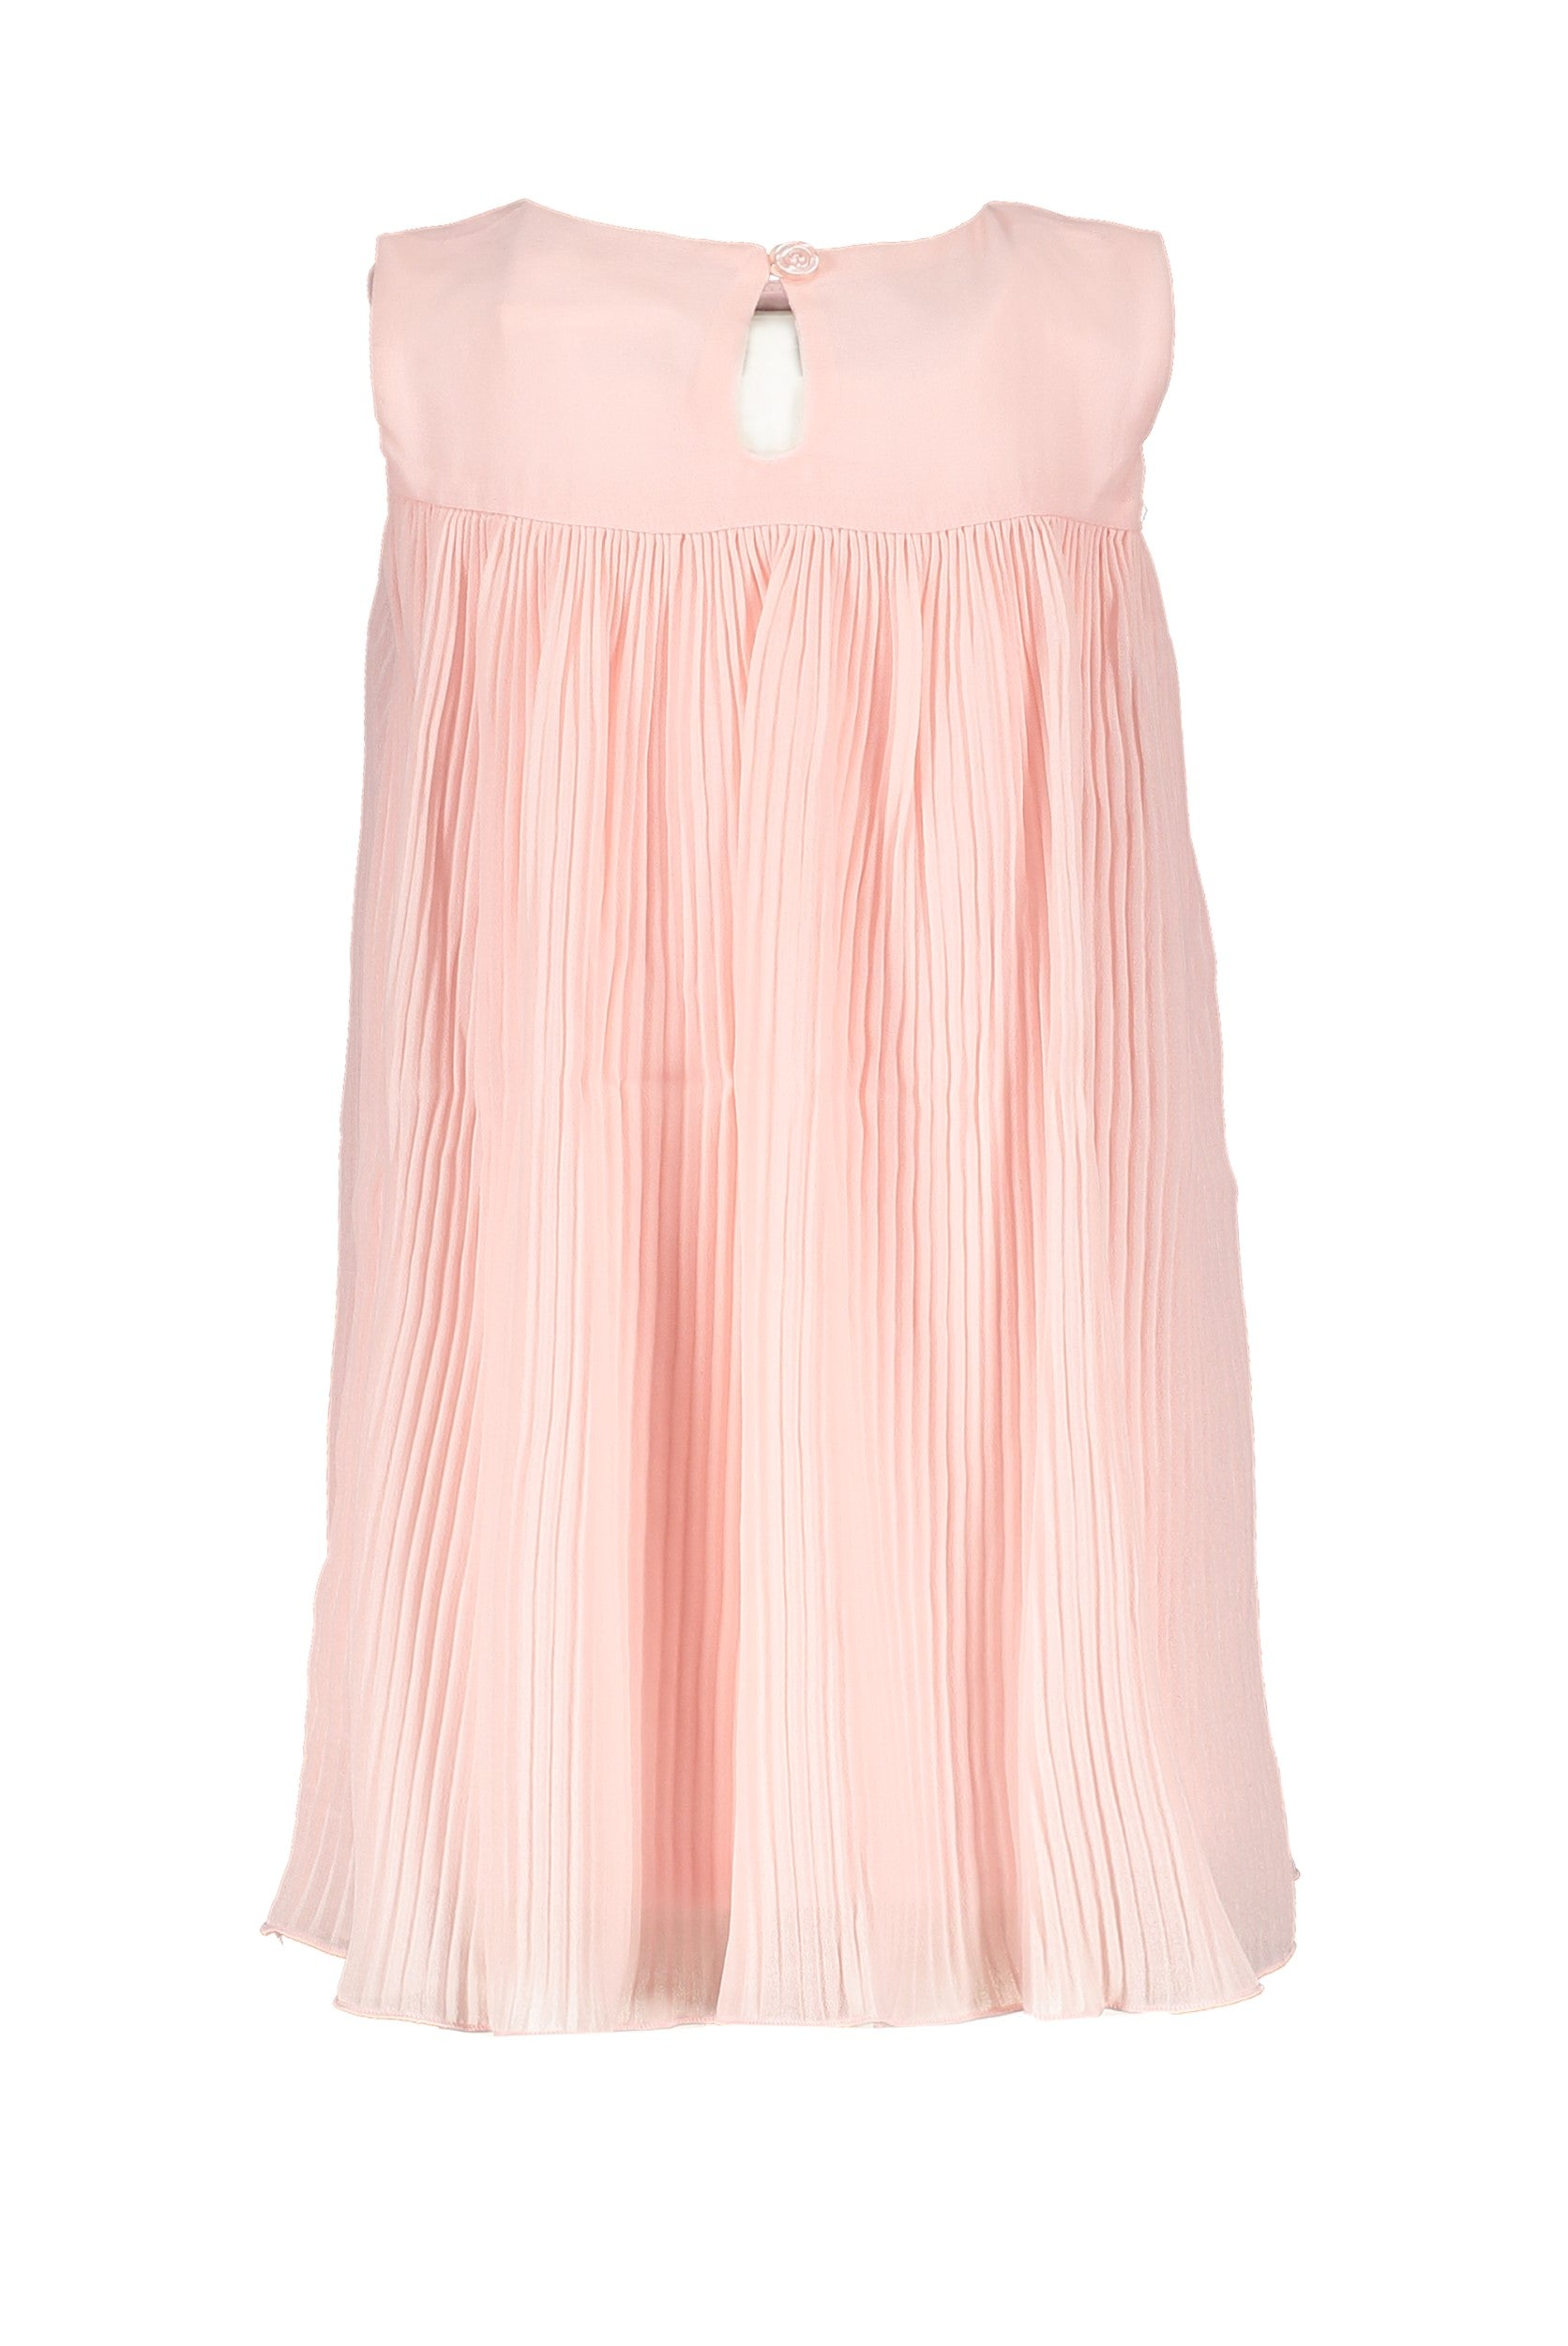 Lechic Pink Pleated  dress (Baby Girl ) - The Mango Tree